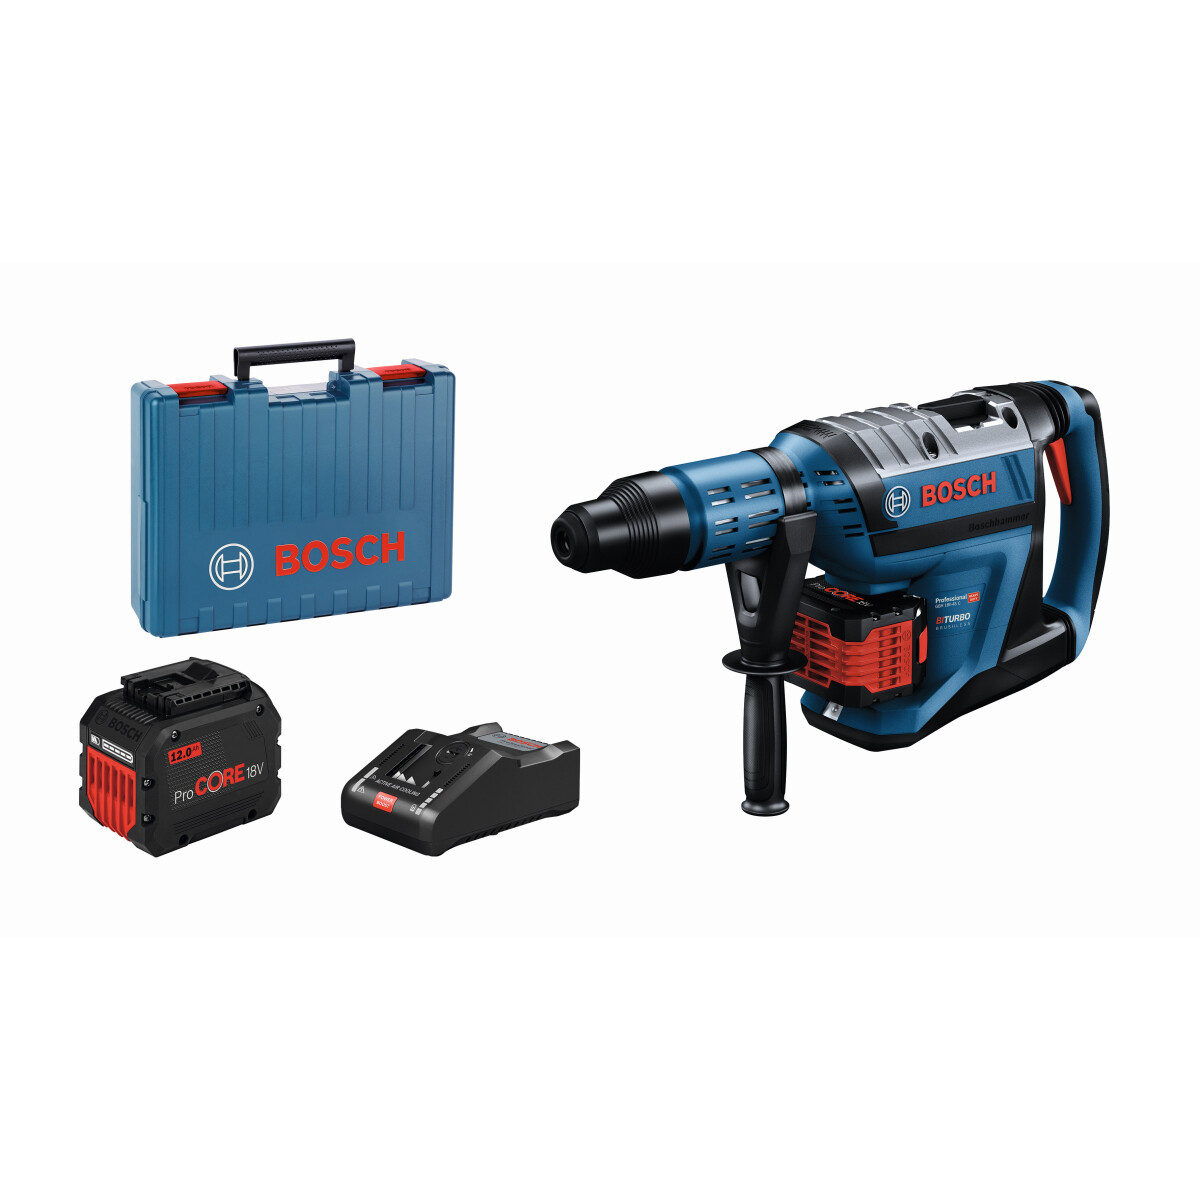 Bosch GBH 18V-45 C 18v BiTurbo Brushless SDS Max Hammer Drill Connection Ready (2x12.0Ah) in Carry Case